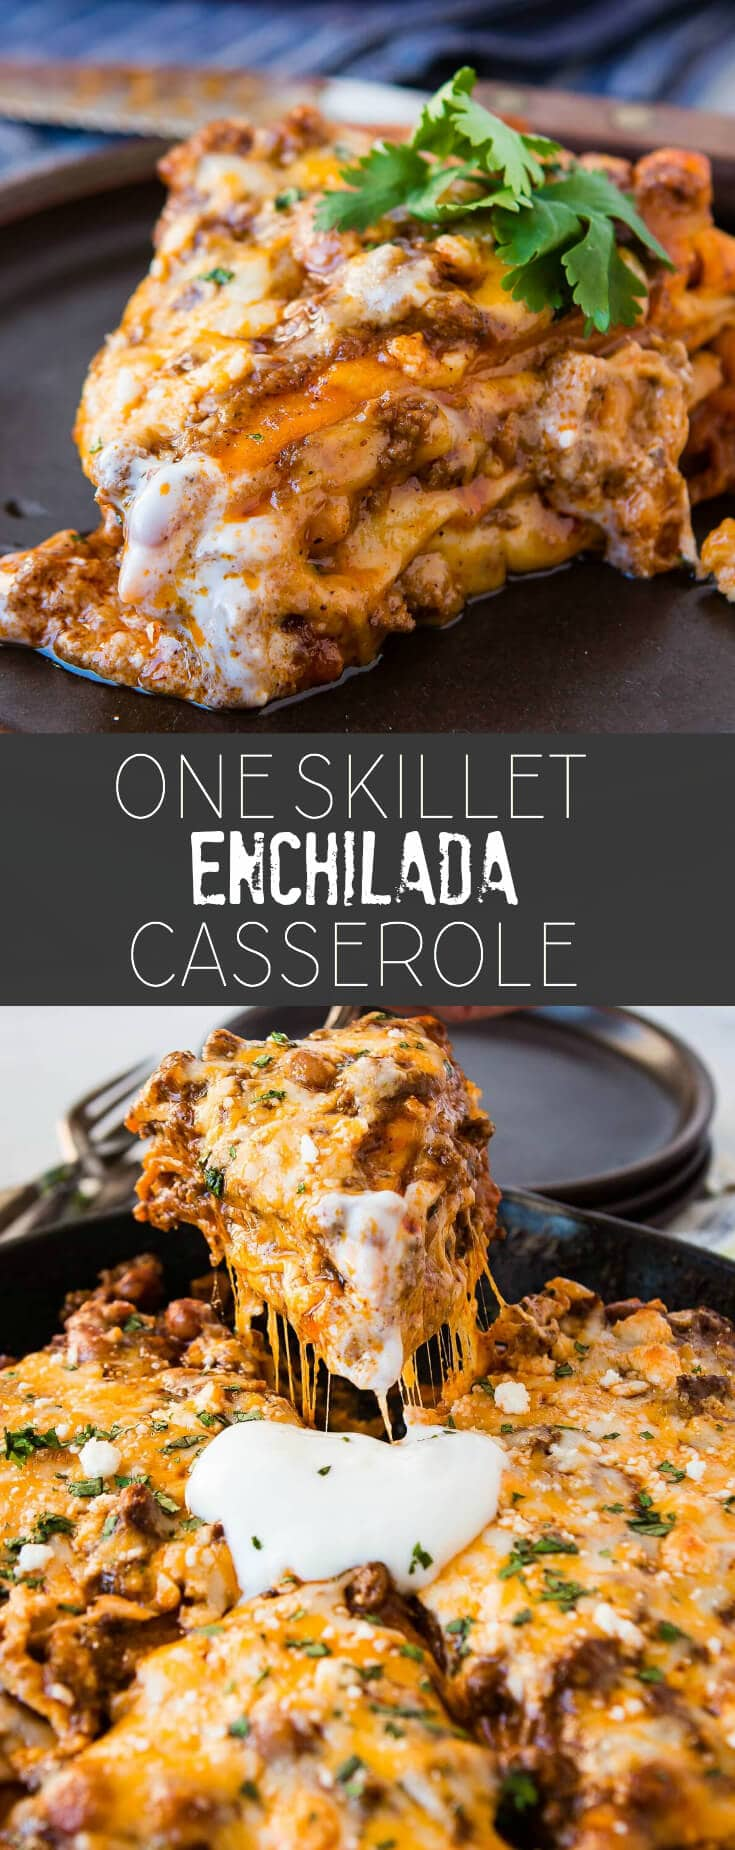 Nothing is better than a skillet piled high with saucy meat, flour tortillas and gooey cheese. One skillet enchilada casserole is perfect for family dinner.